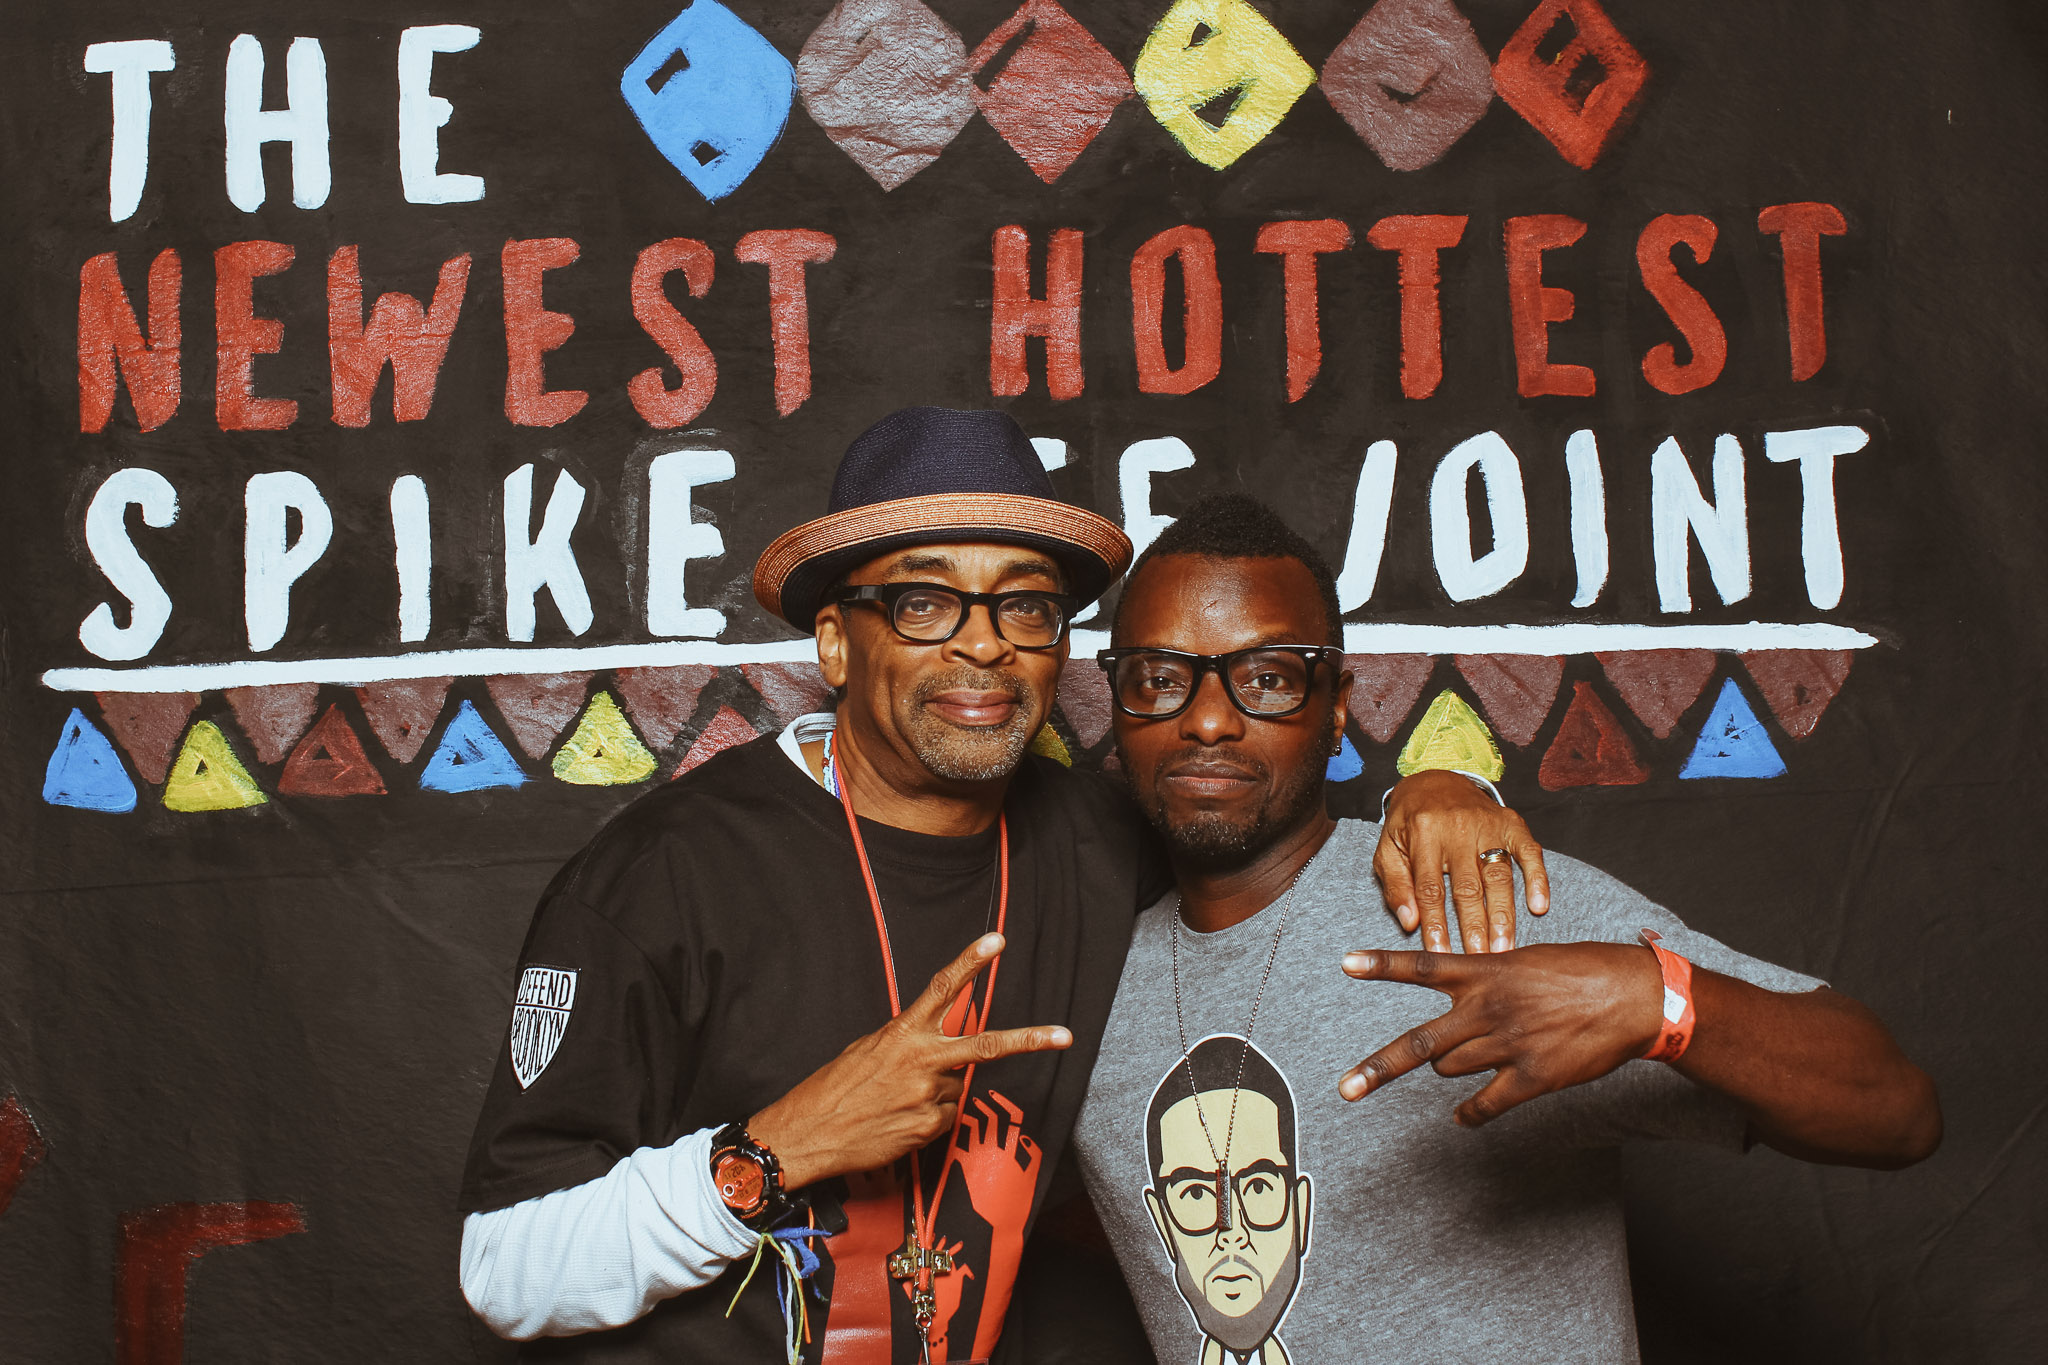 20130817-Spike Lee Joint-407.jpg